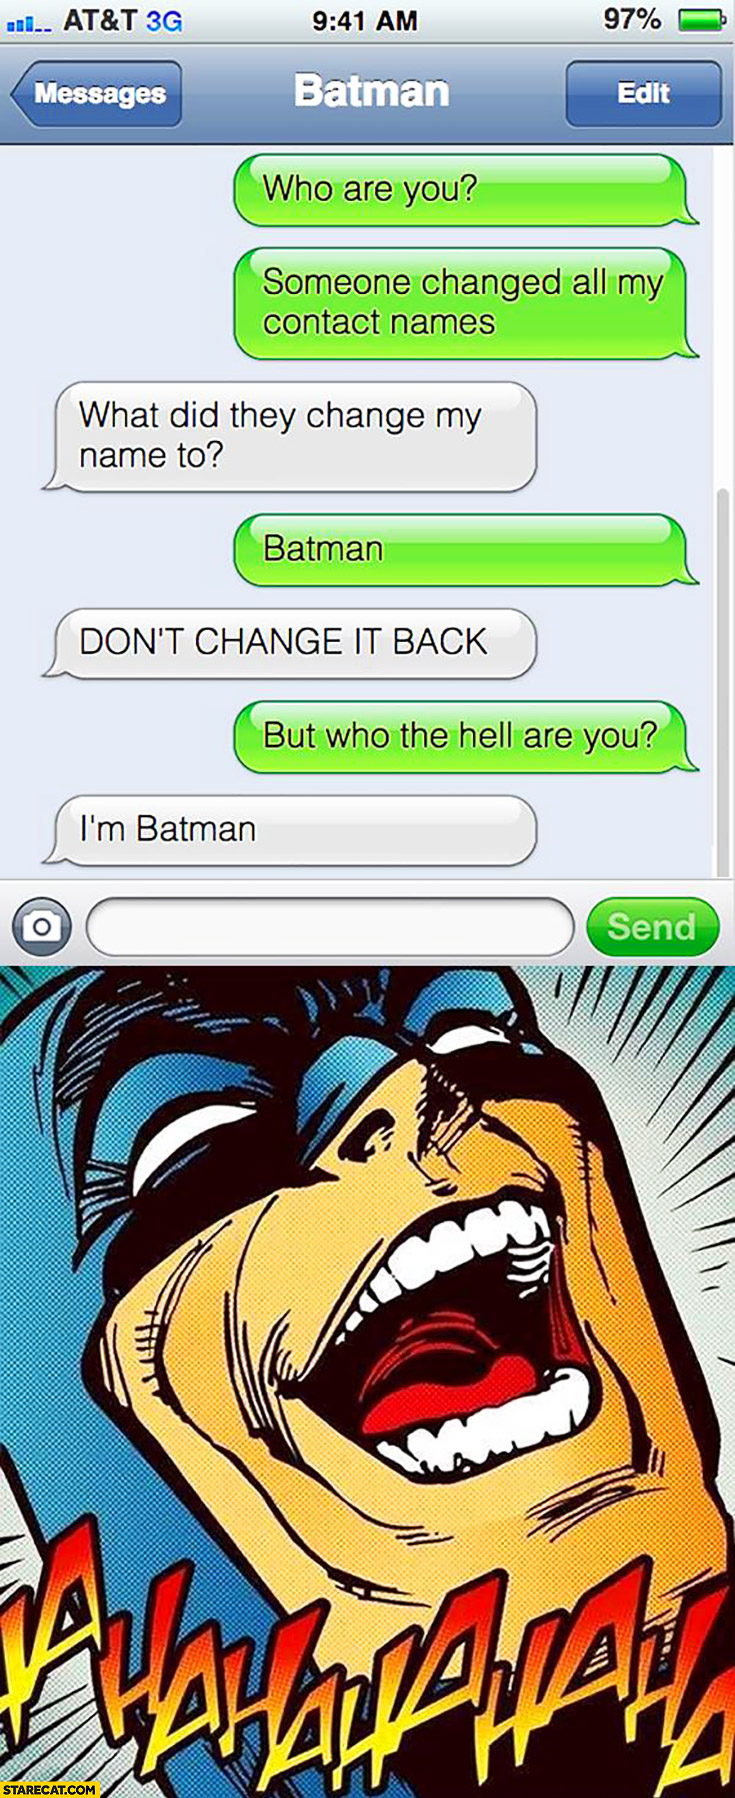 Who are you? Someone changed all my contact names. What did they change my name to? Batman. Don't change it back, I'm Batman